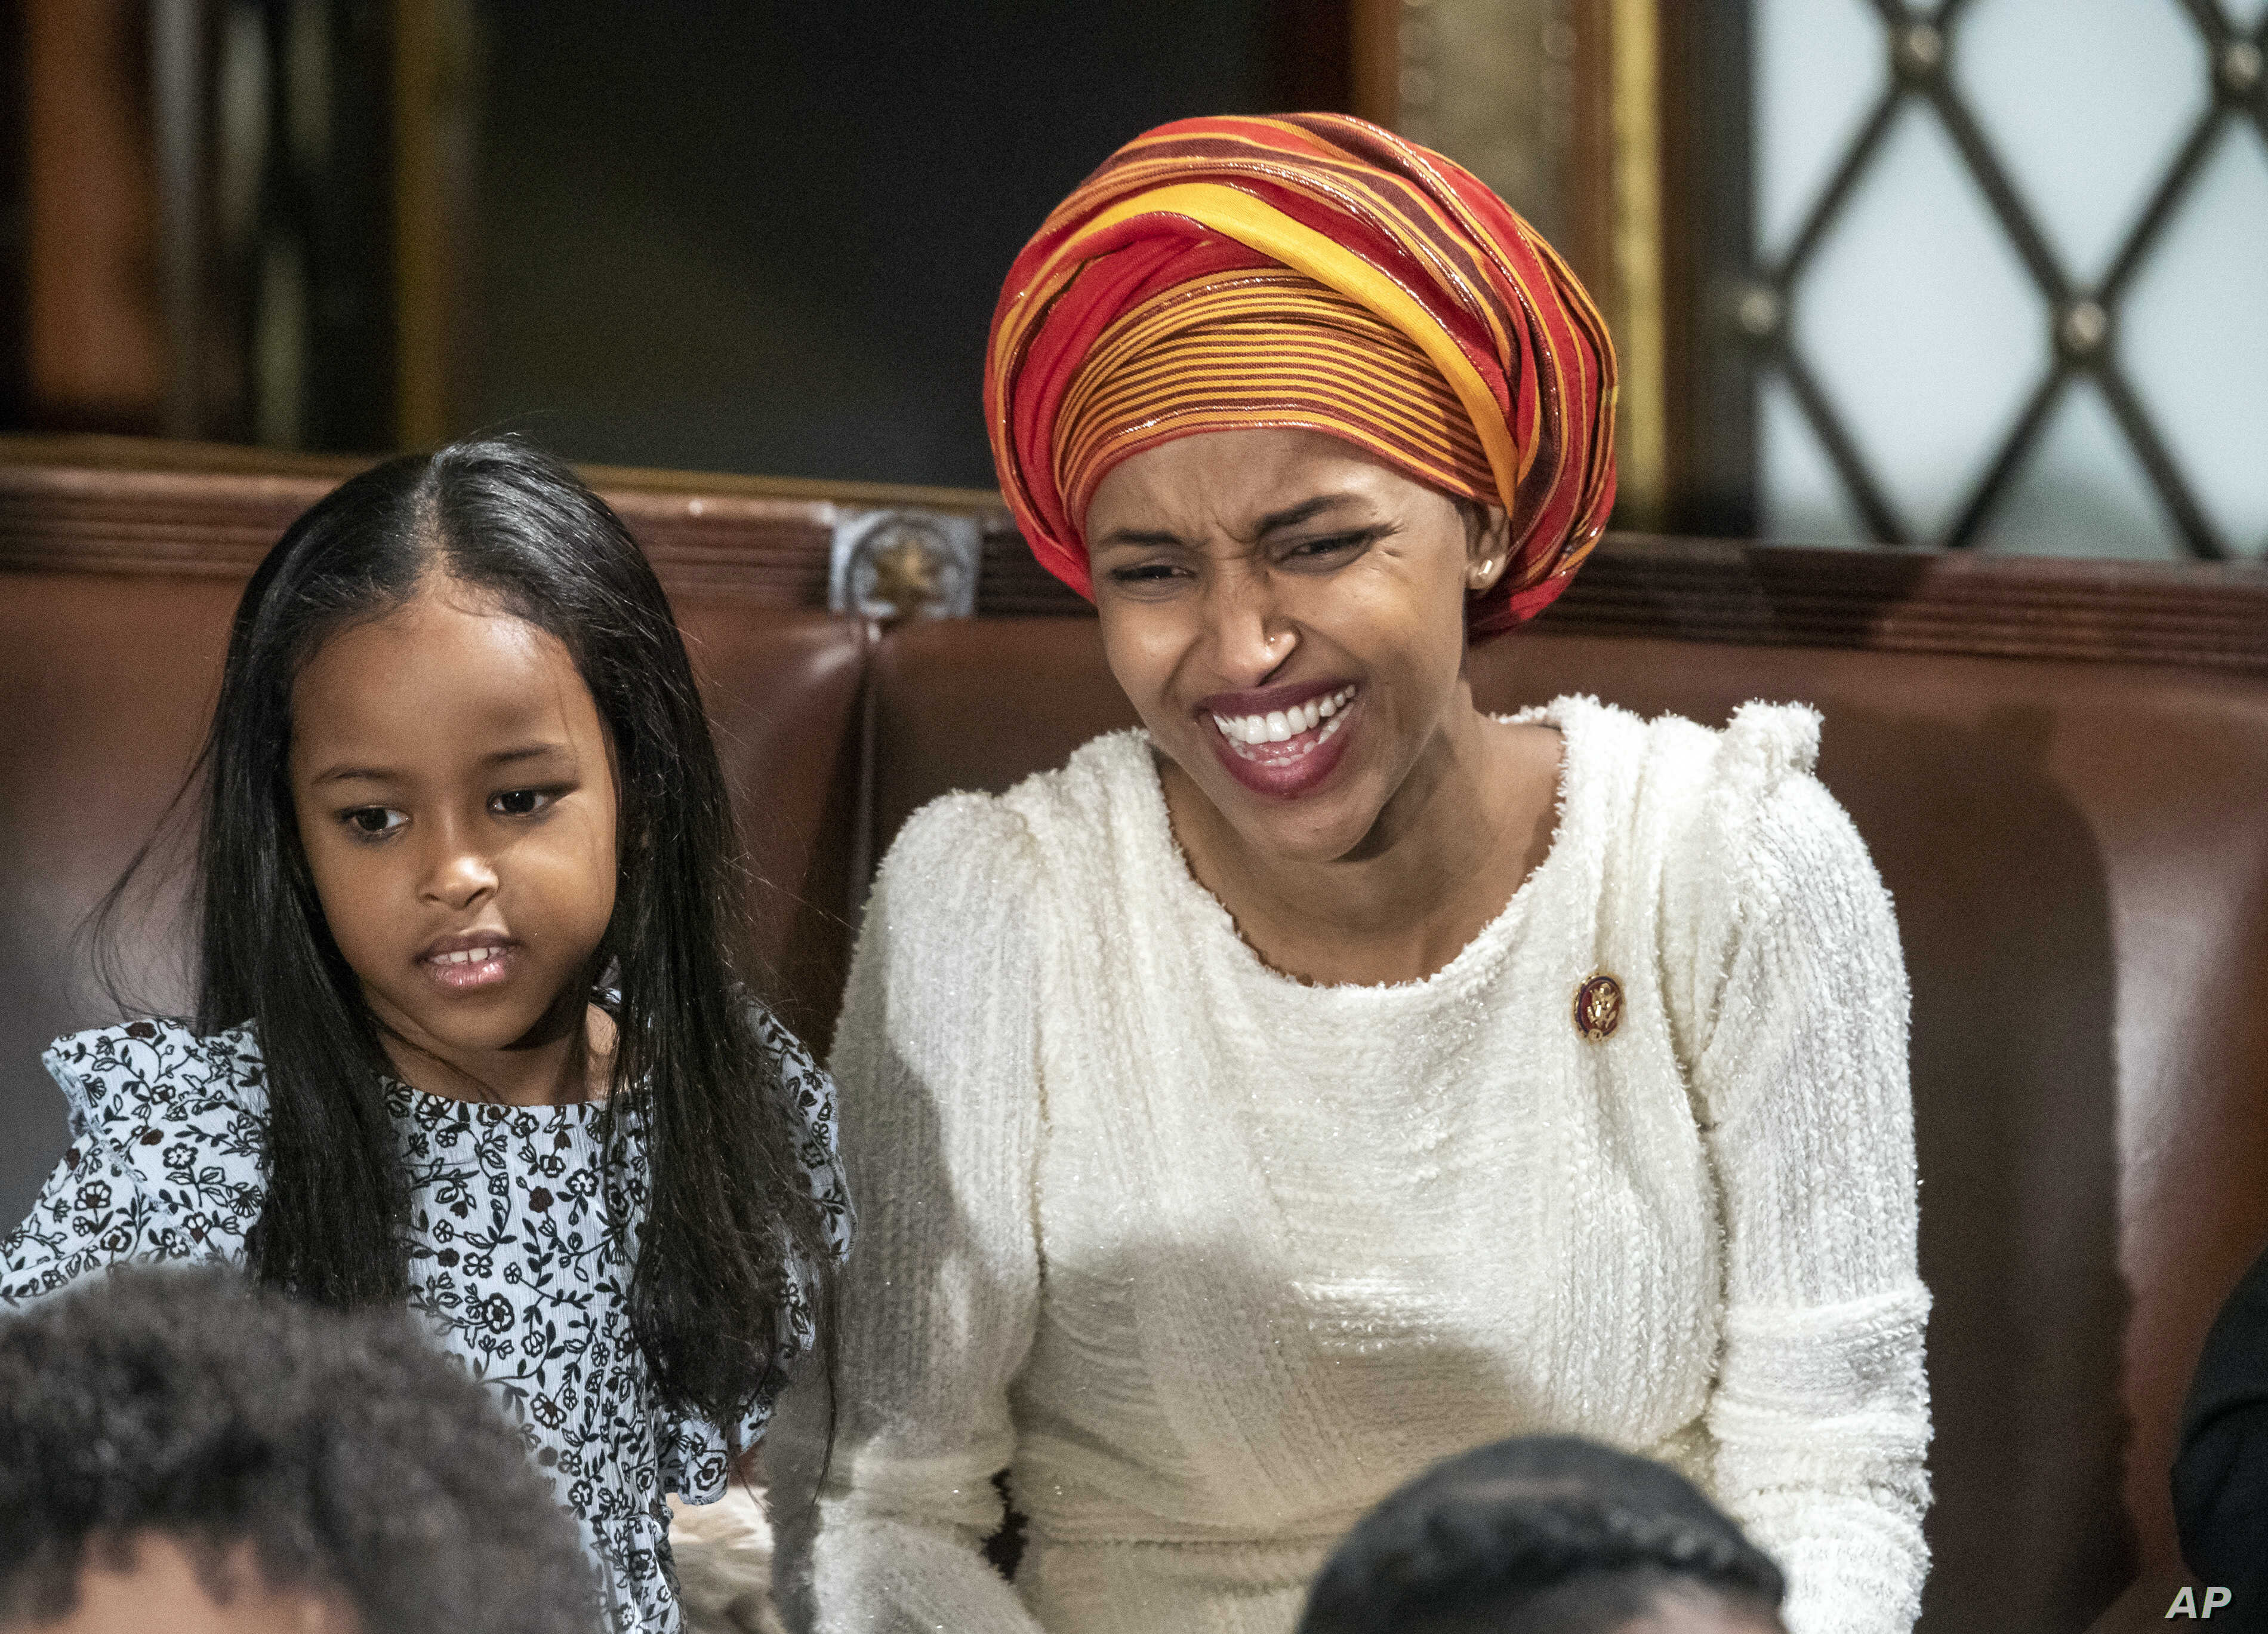 Rep. Ilhan Omar, a freshman Democrat representing Minnesota's 5th Congressional District, smiles as the House of Representatives assembles for the first day of the 116th Congress at the Capitol in Washington, Jan. 3, 2019.